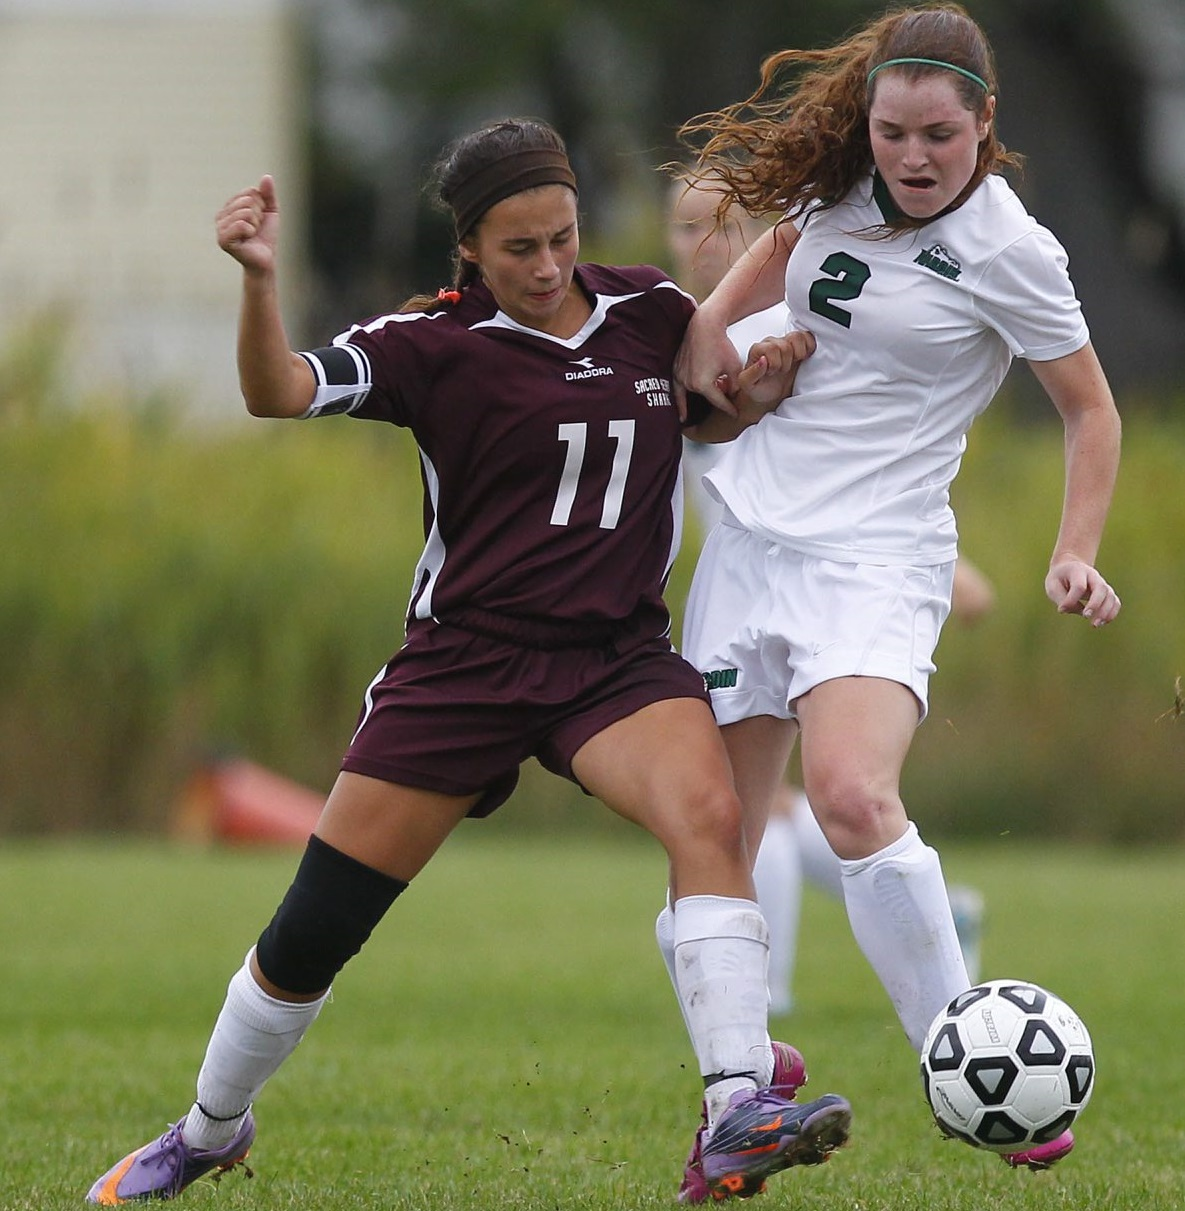 Sacred Heart's Jenna Tomizzi battles for a loose ball in 2012. (Mark Mulville/Buffalo News file photo)